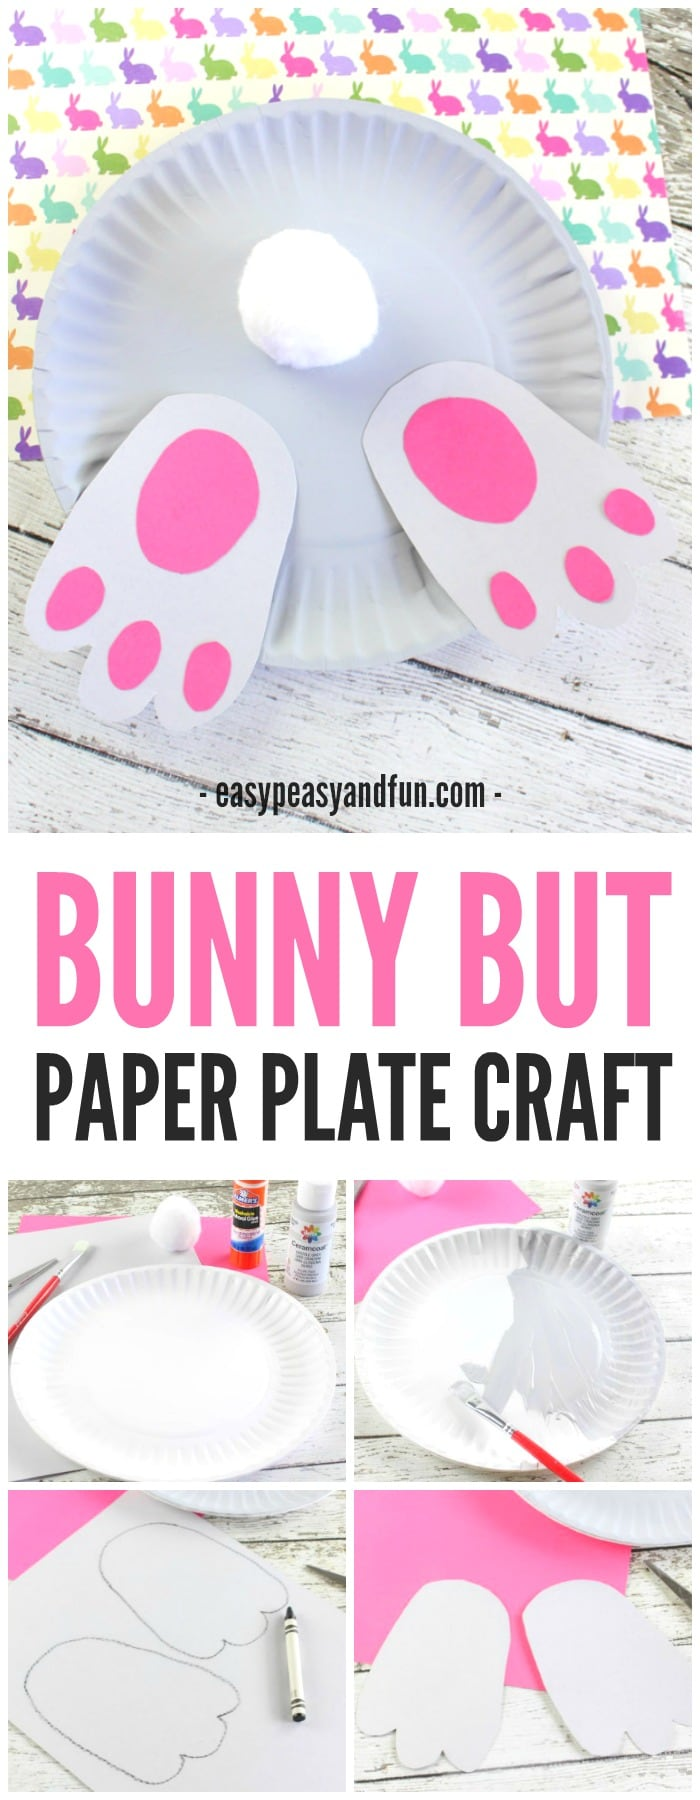 This Easter craft idea is sure to bring out lots of smiles and giggles. Adorable Bunny Butt Paper Plate ...  sc 1 st  Easy Peasy and Fun & Bunny Butt Paper Plate Craft - Easy Peasy and Fun